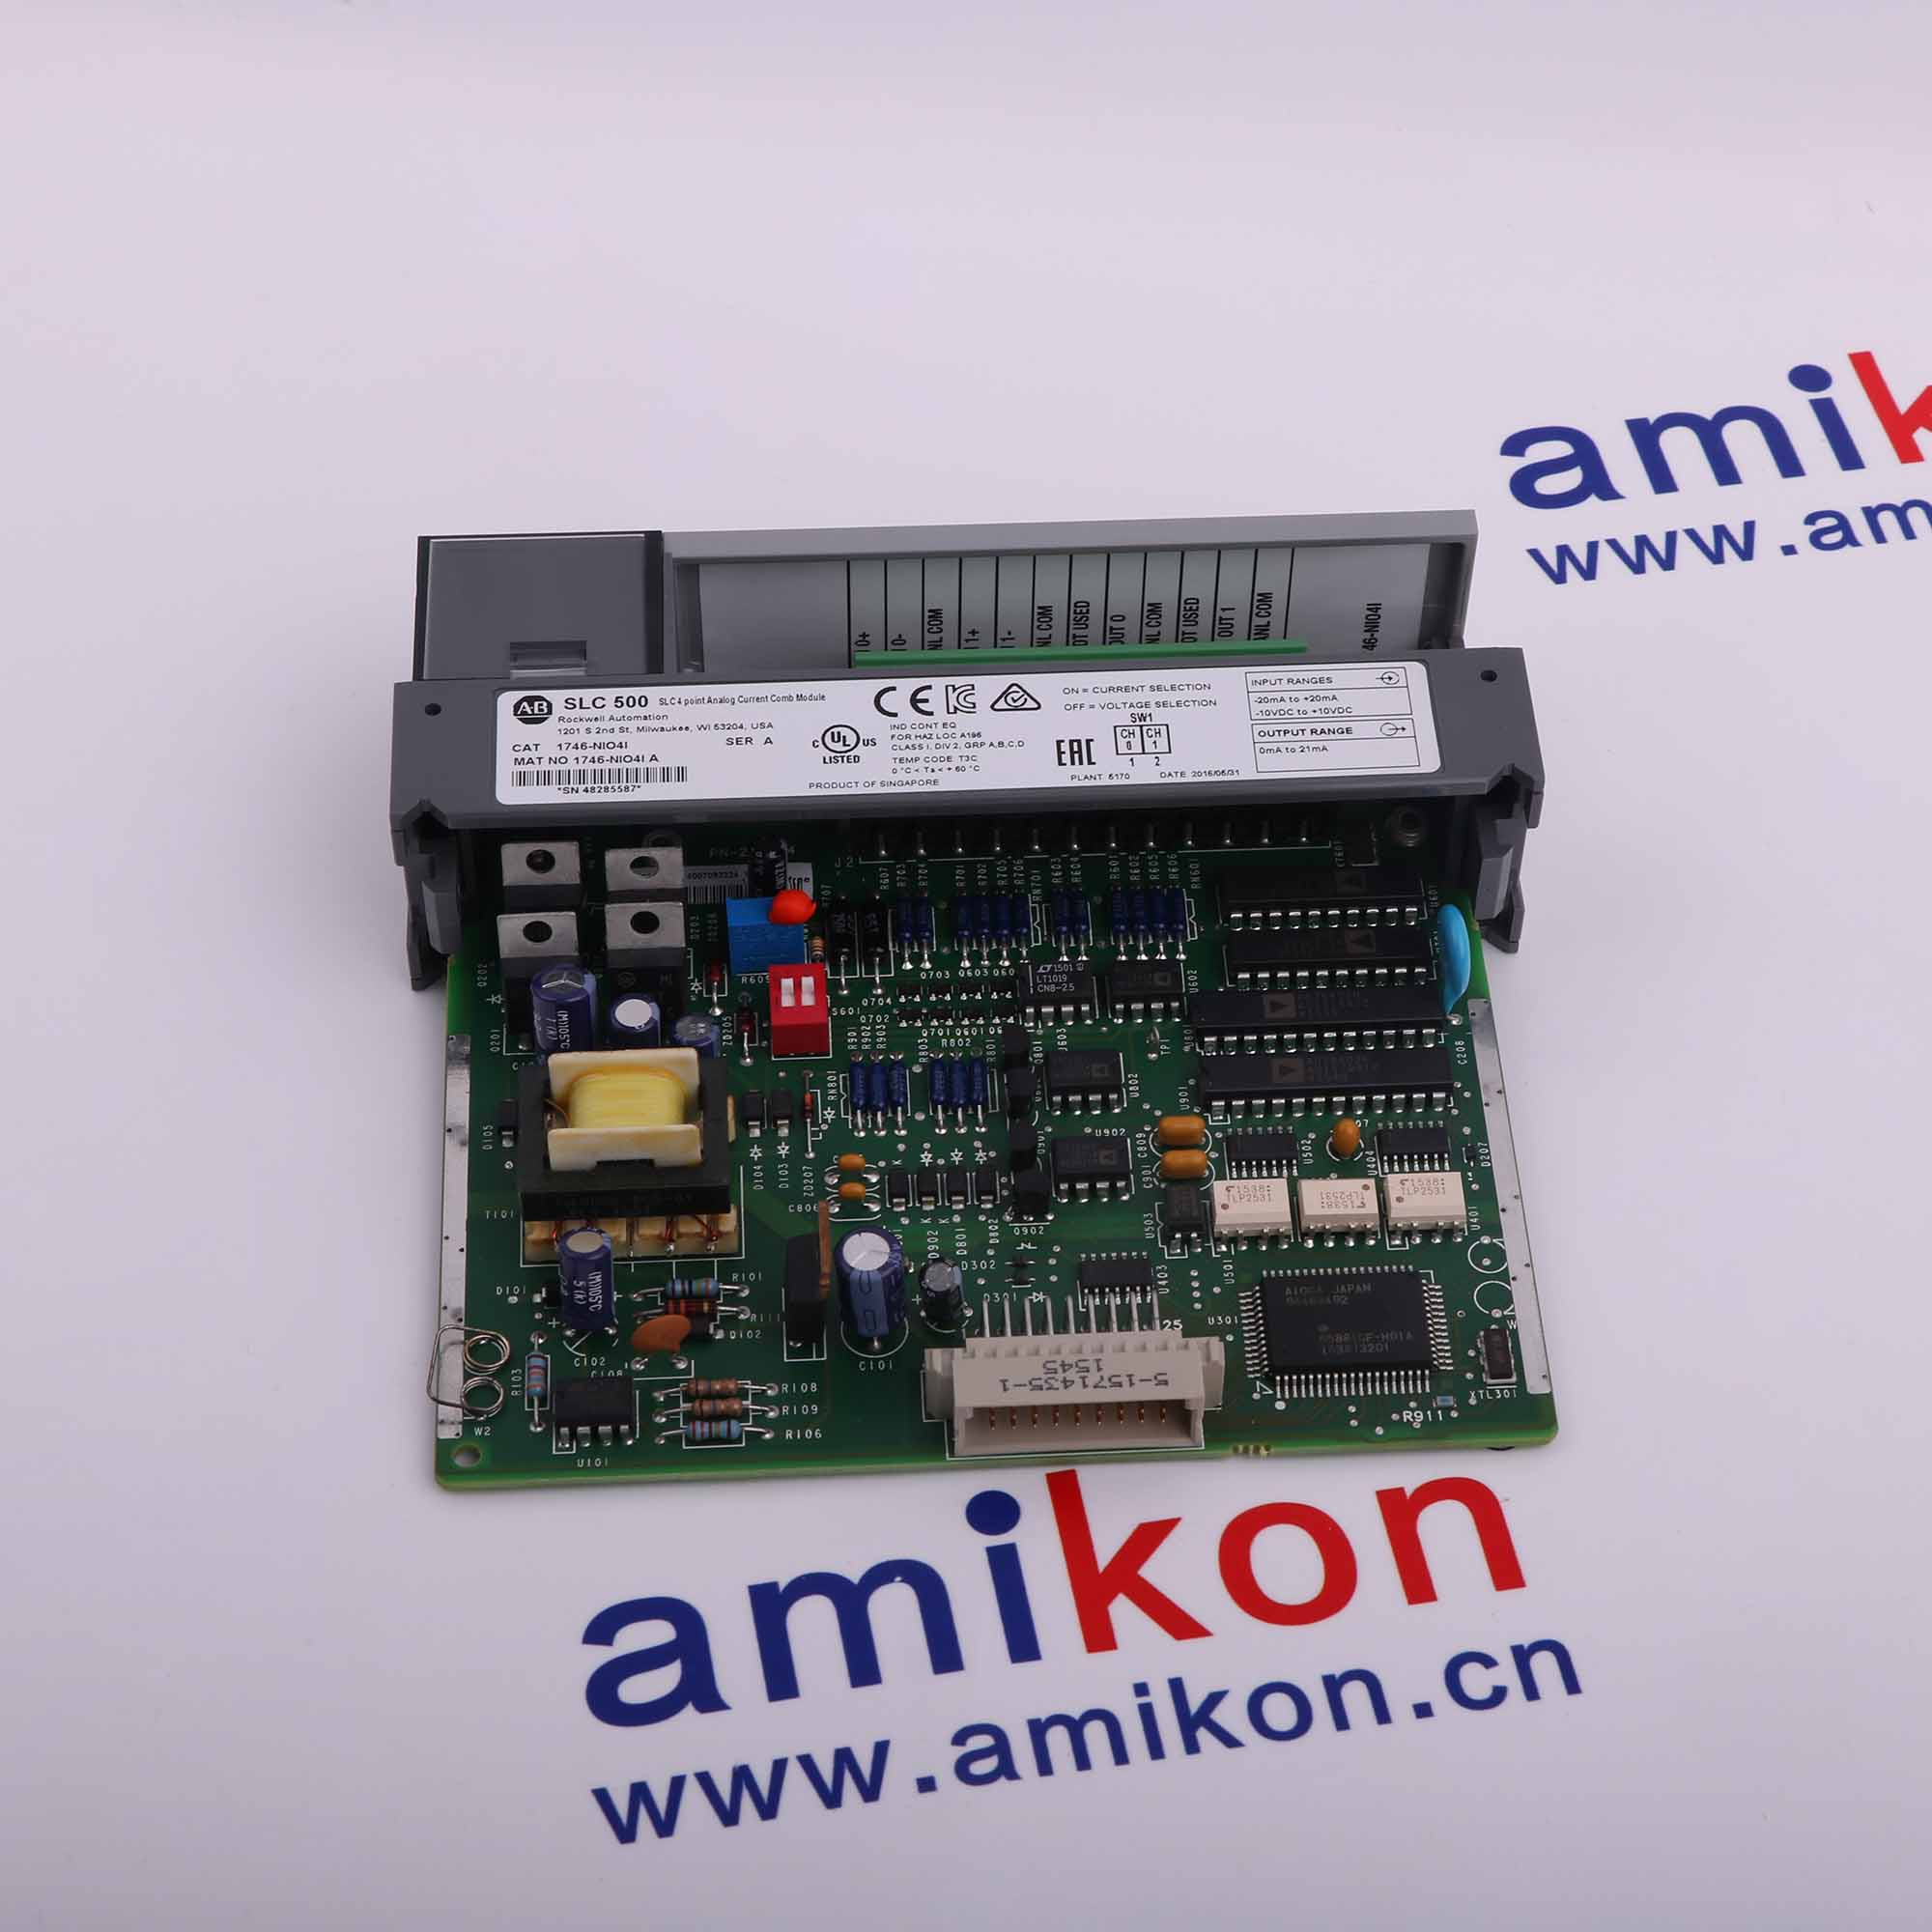 A20B-8100-0130/0136/ 0137 ABB NEW &Original PLC-Mall Genuine ABB spare parts global on-time delivery